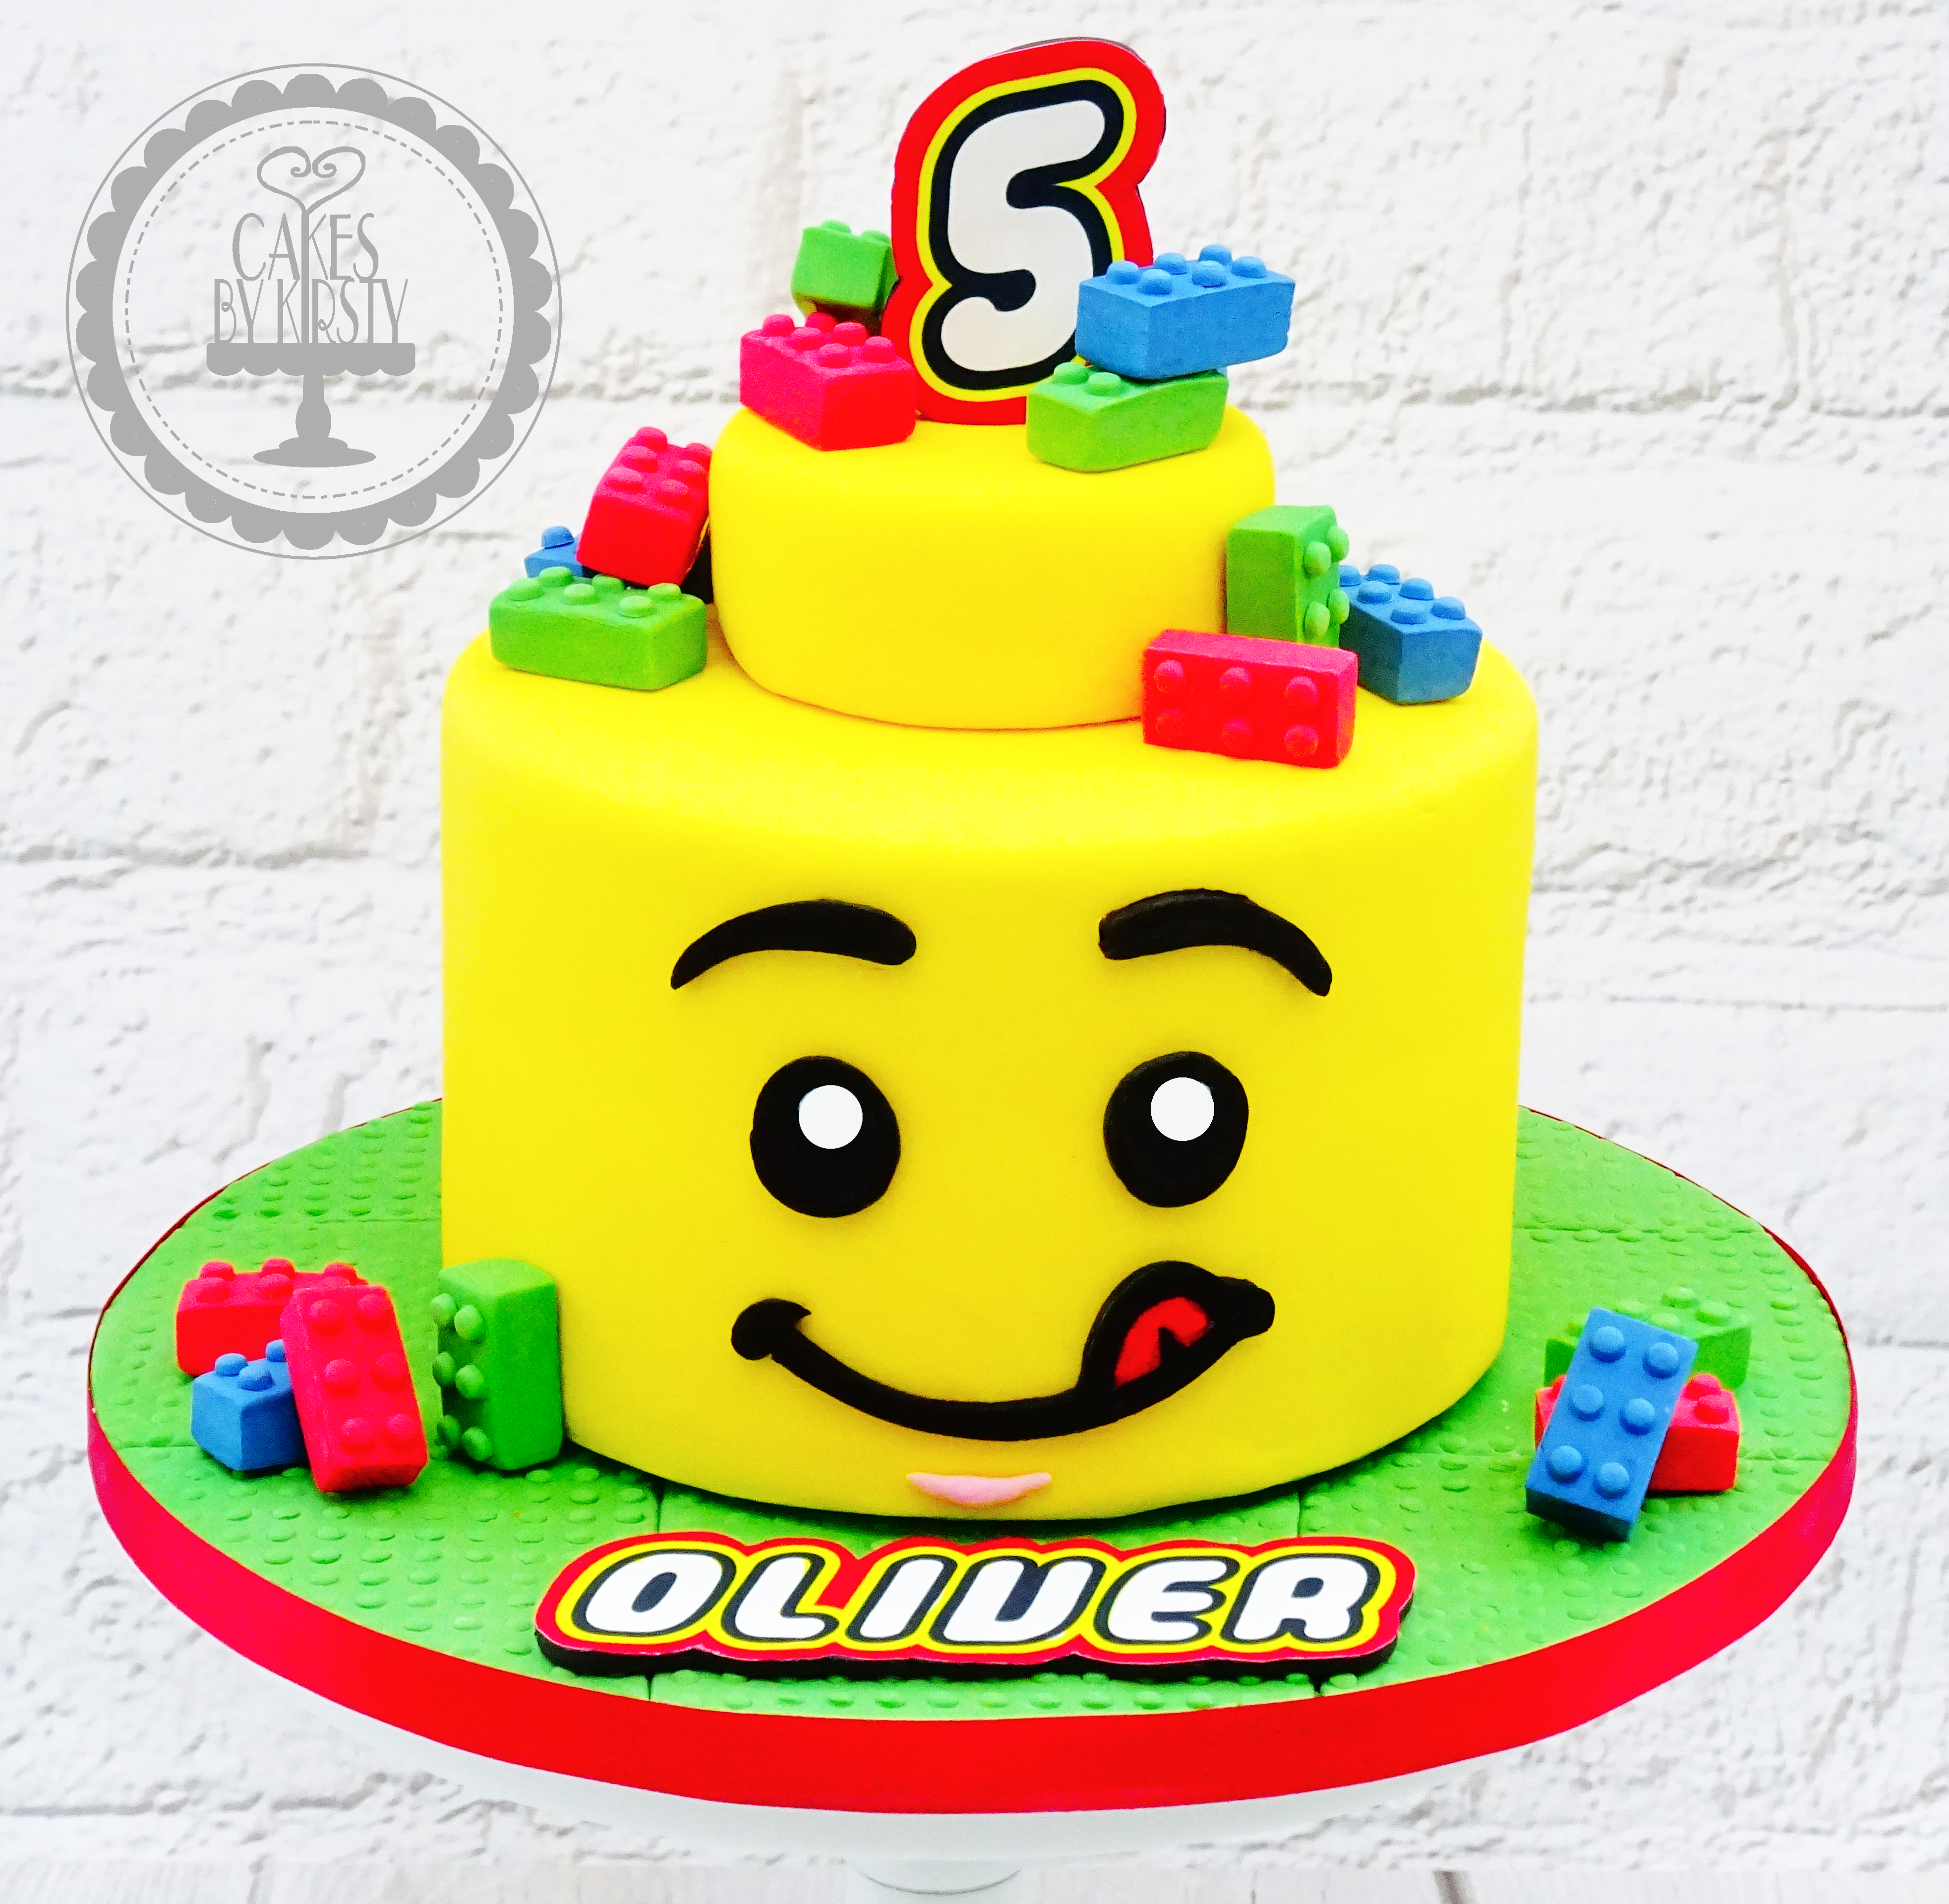 Superb Cakes By Kirsty Childrens Cakes Funny Birthday Cards Online Alyptdamsfinfo